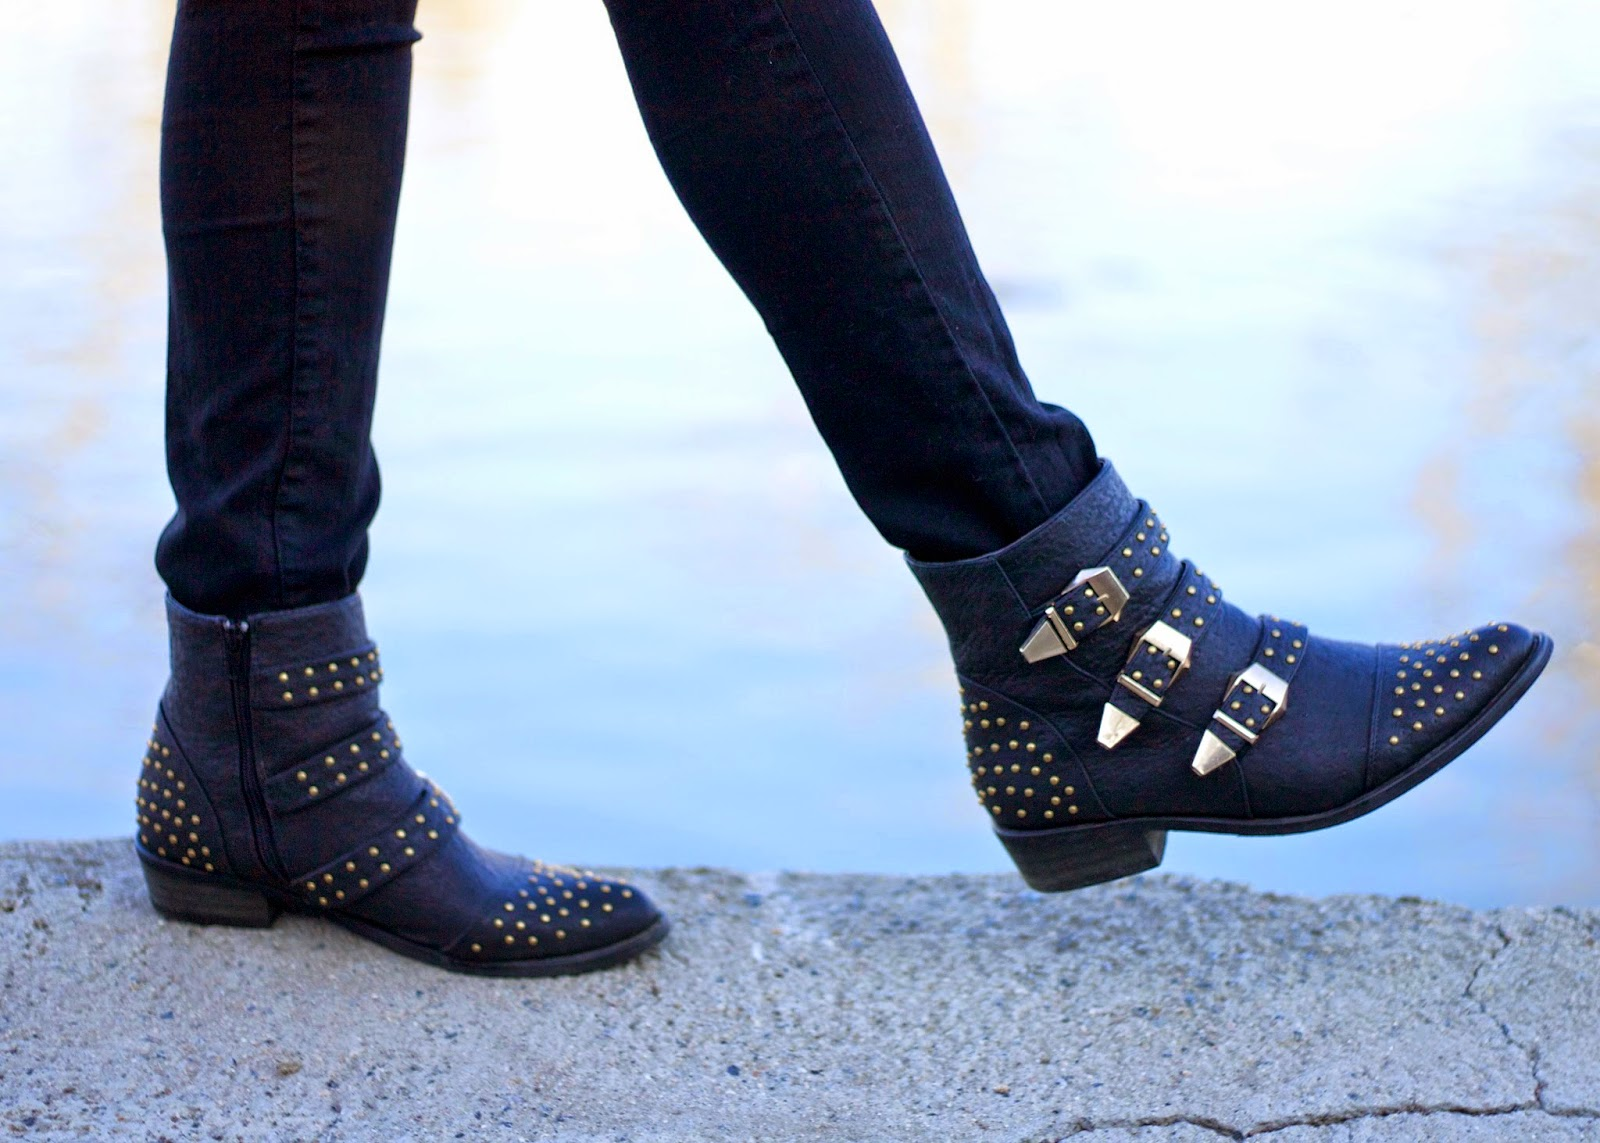 Studded booties, black studded booties, chloe susanna boots lookalikes, chloe susanna booties, justfab booties